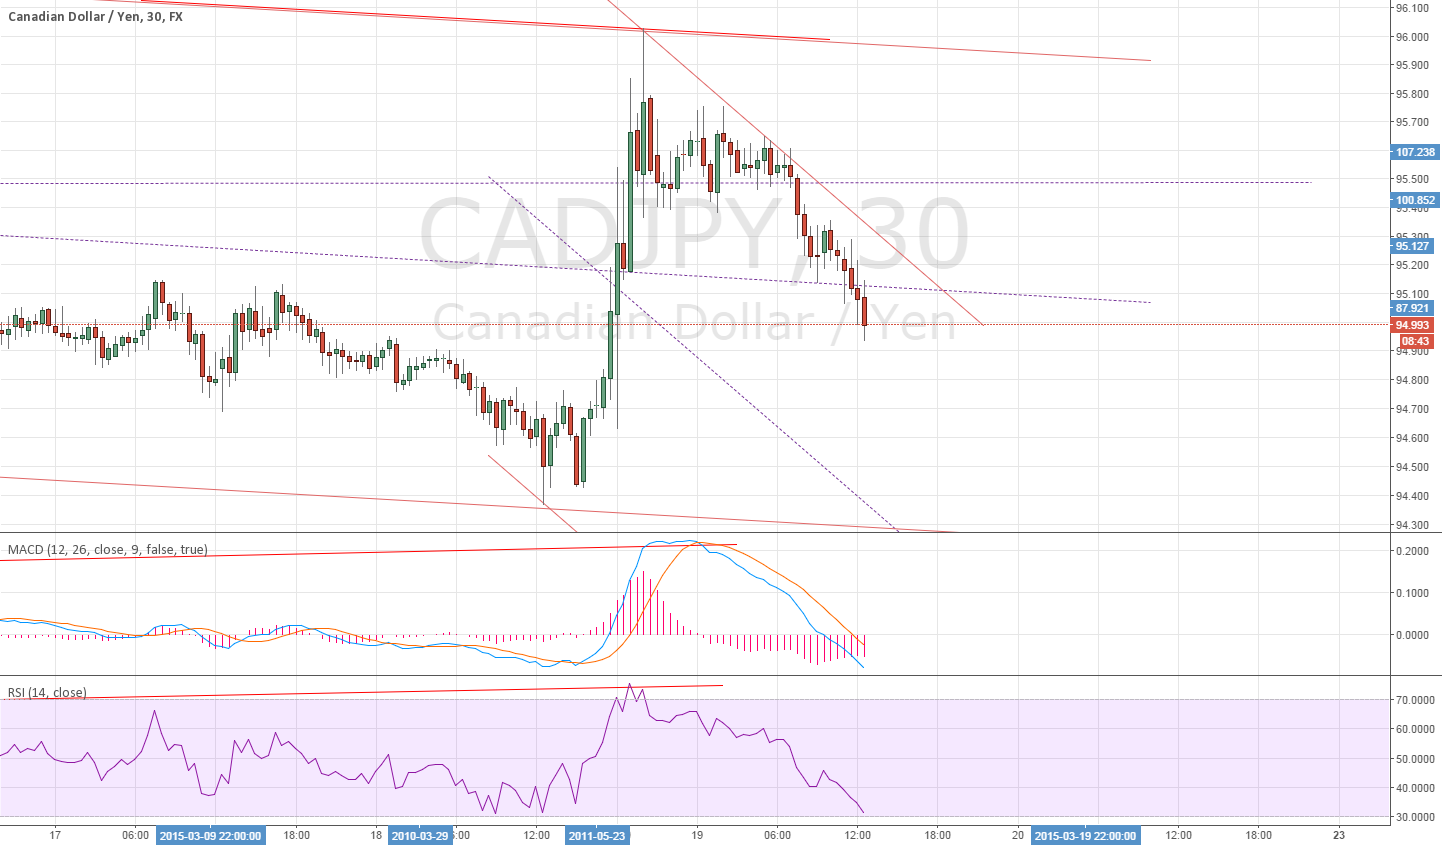 30 Min for CADJPY divergence - No >_<